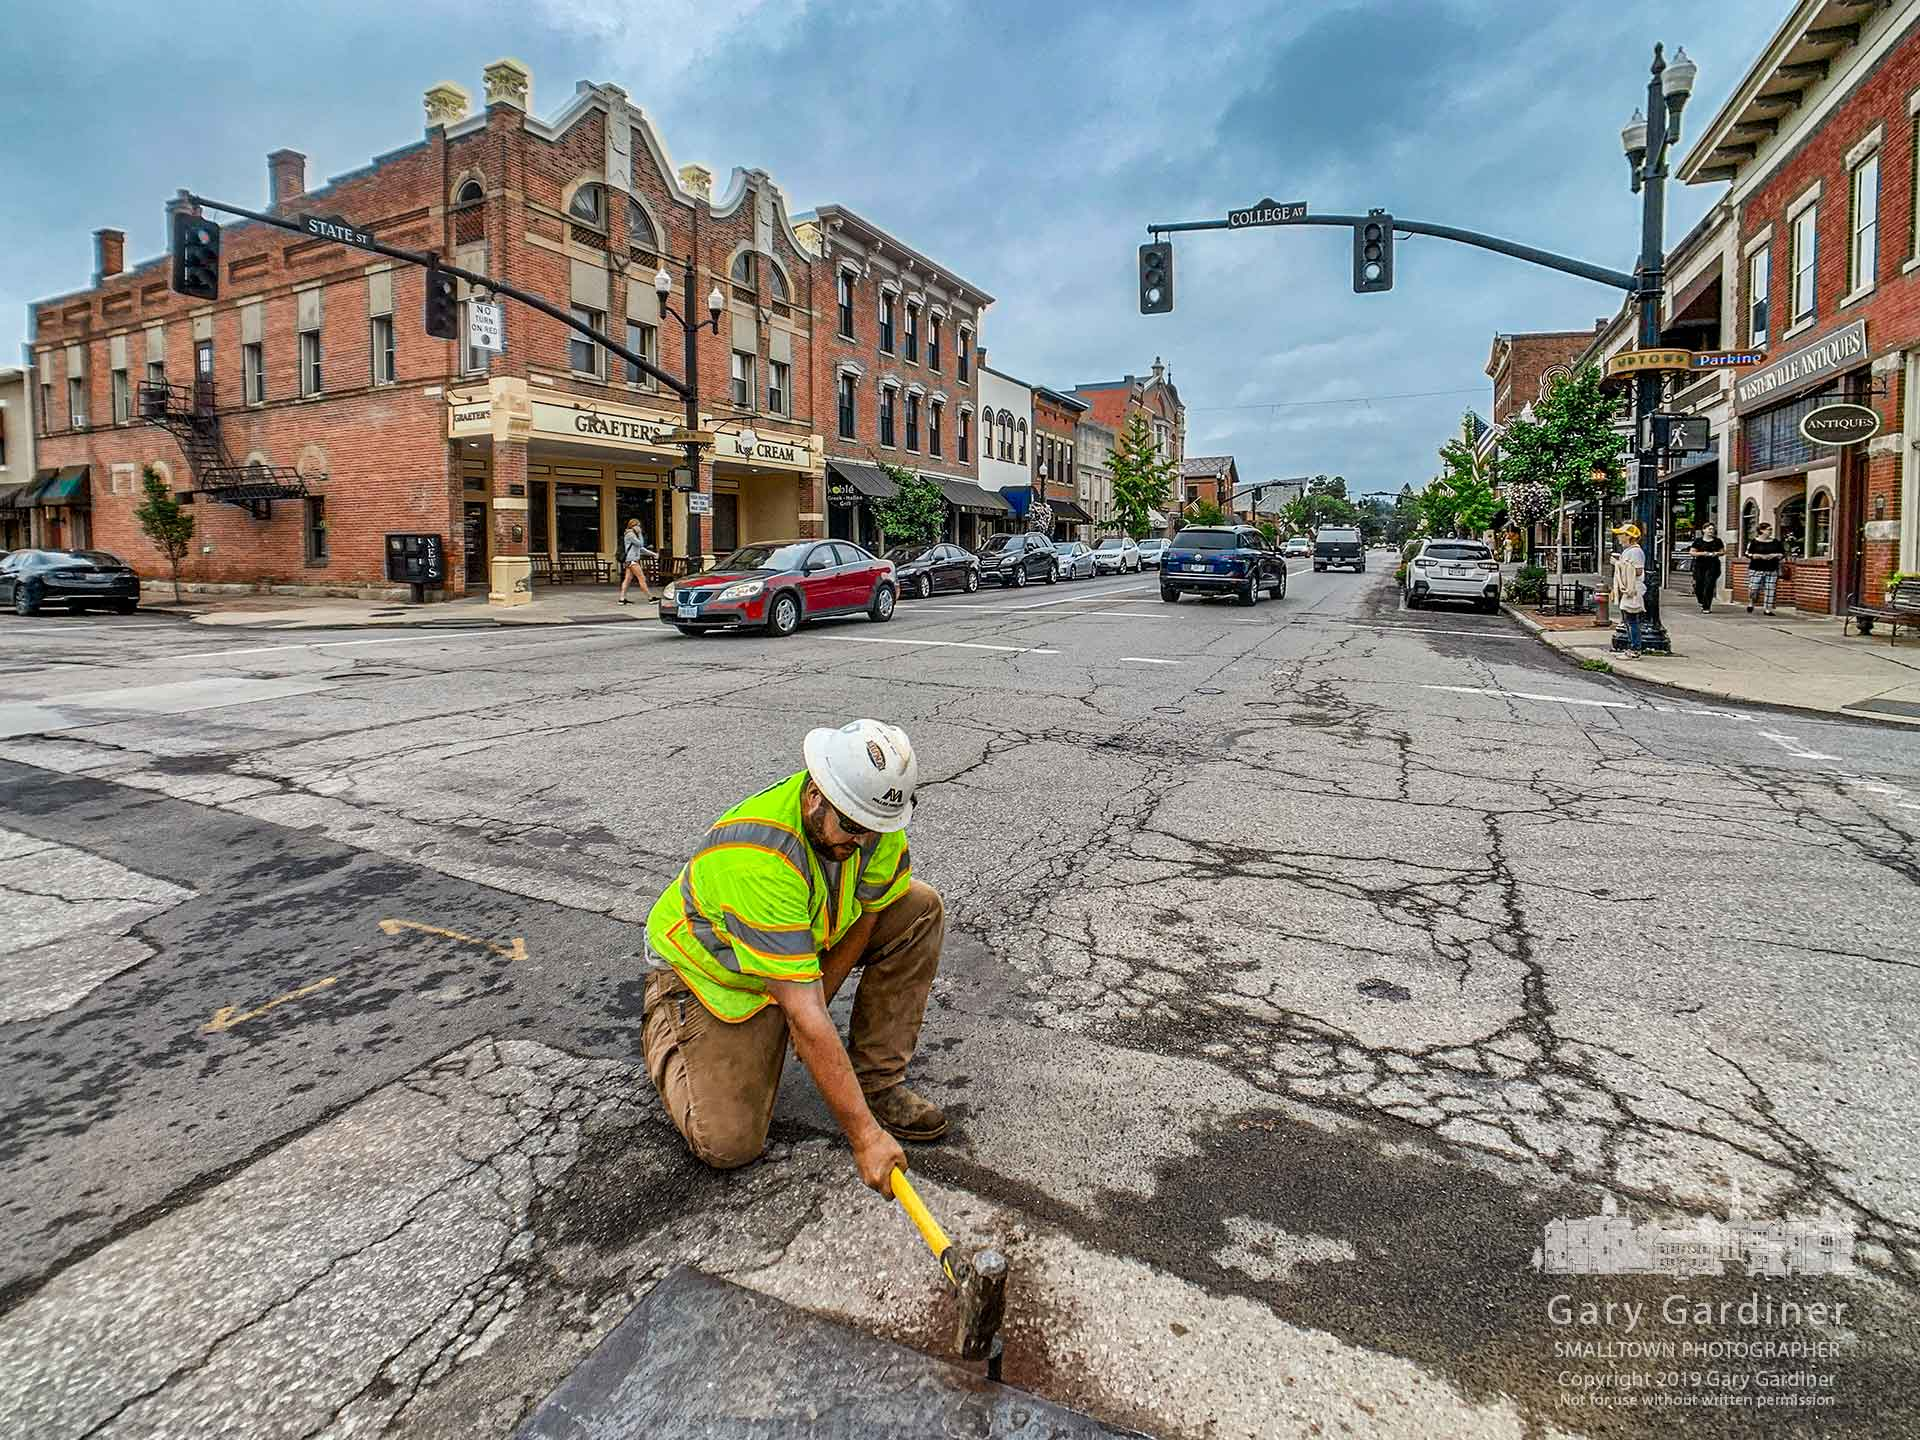 A Miller Pipeline worker hammers a railroad spike into State Street to hold the edge of a steel plate laid in the street to cover a hole where the company is connecting new gas lines. My Final Photo for Aug. 27, 2019.